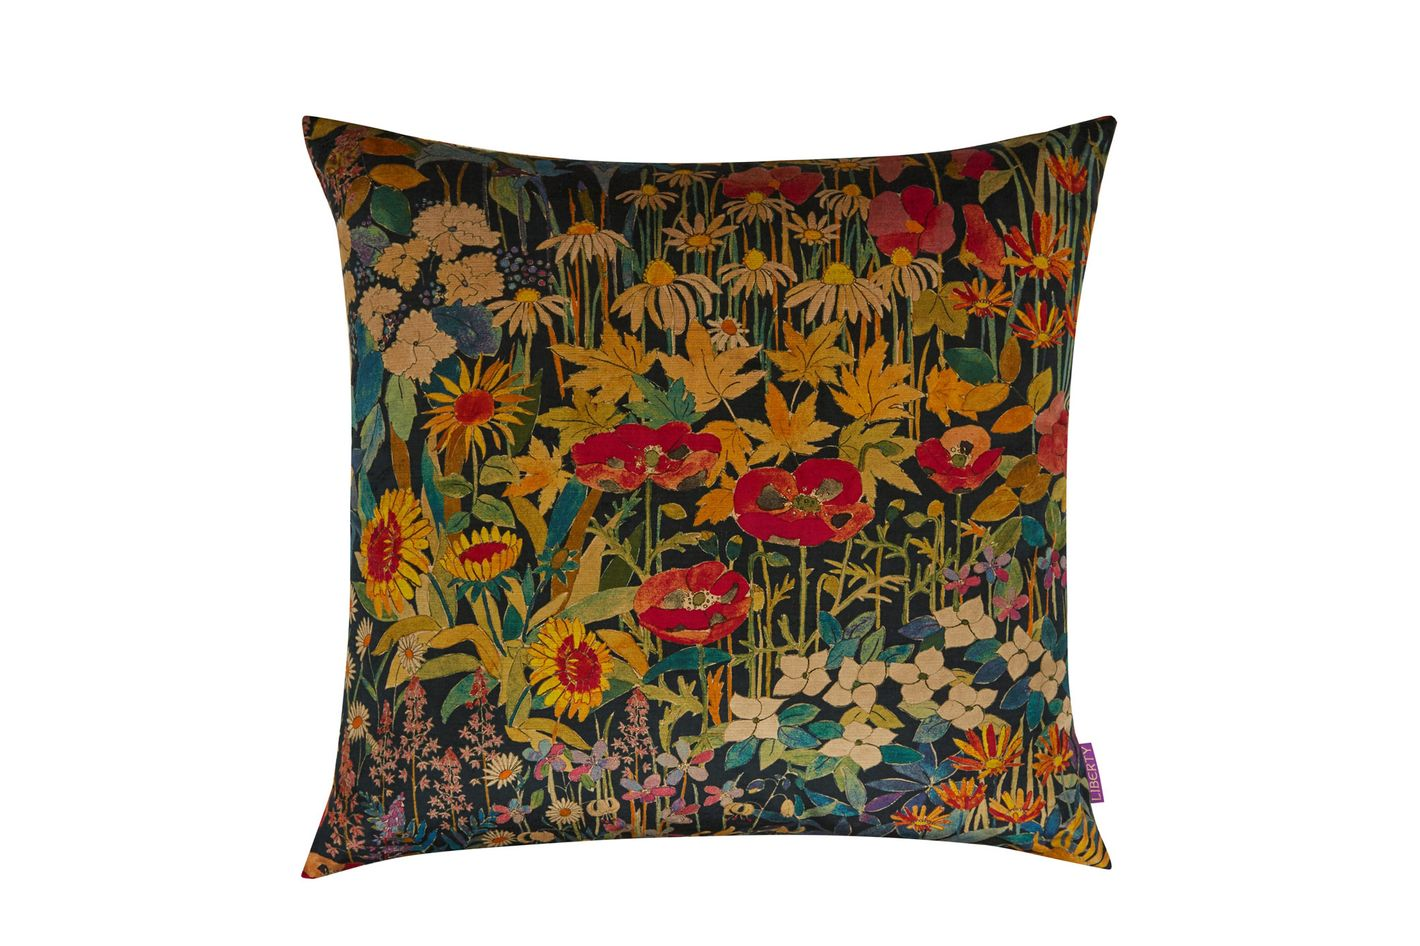 Liberty London Faria Flowers in Marigold Cushion